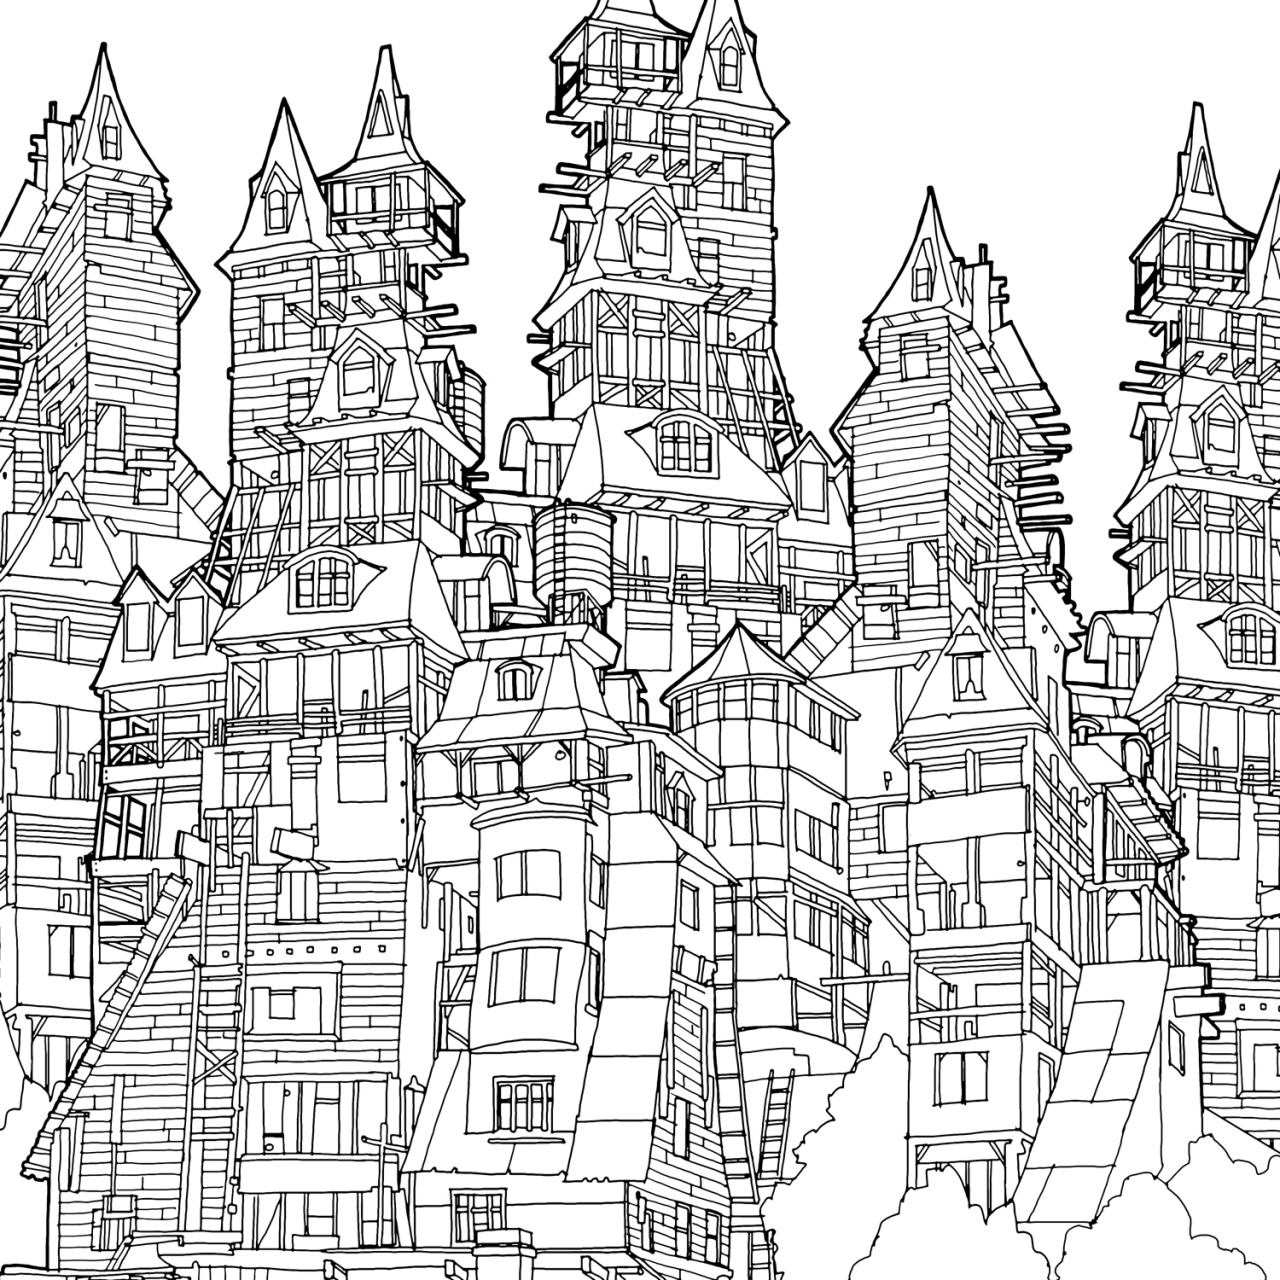 new york skyline drawing color at getdrawings | free download